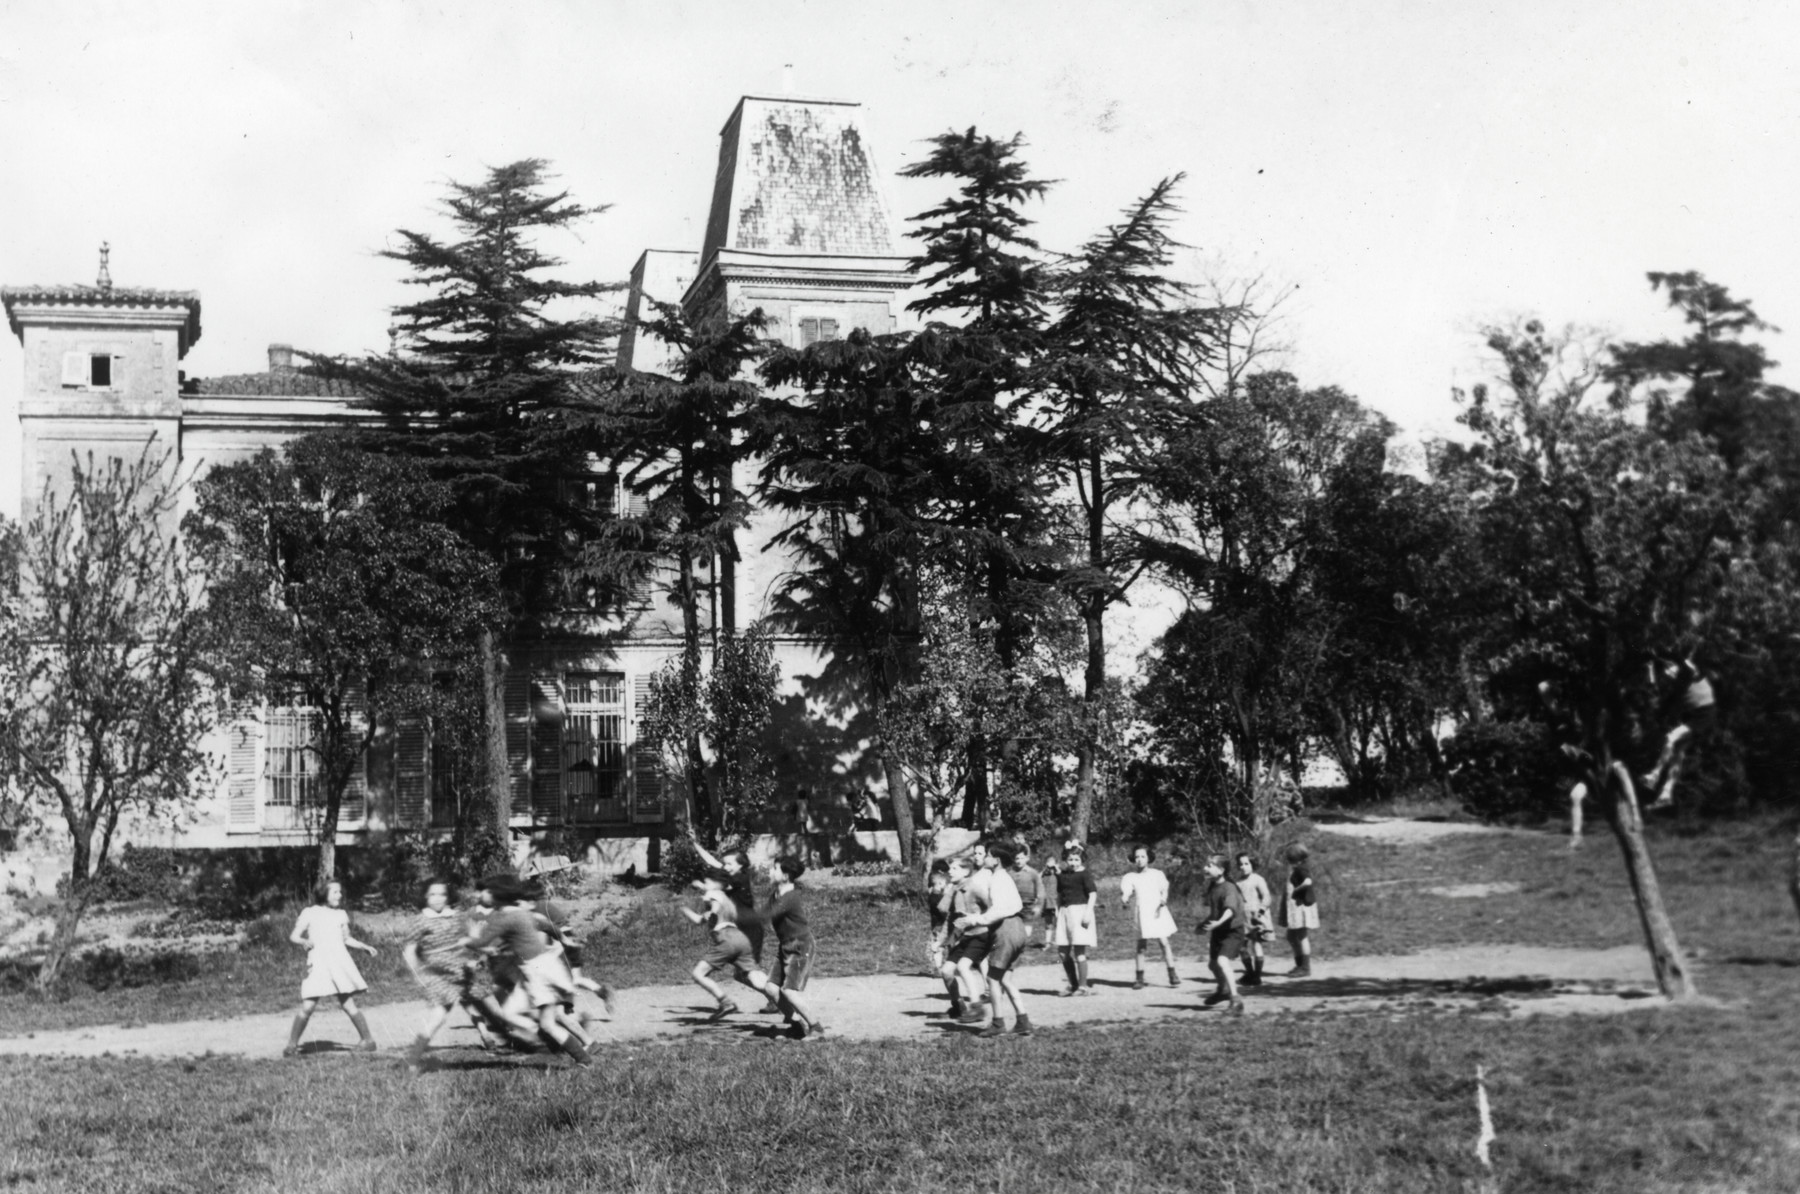 Children play outside at Chateau de Larade.